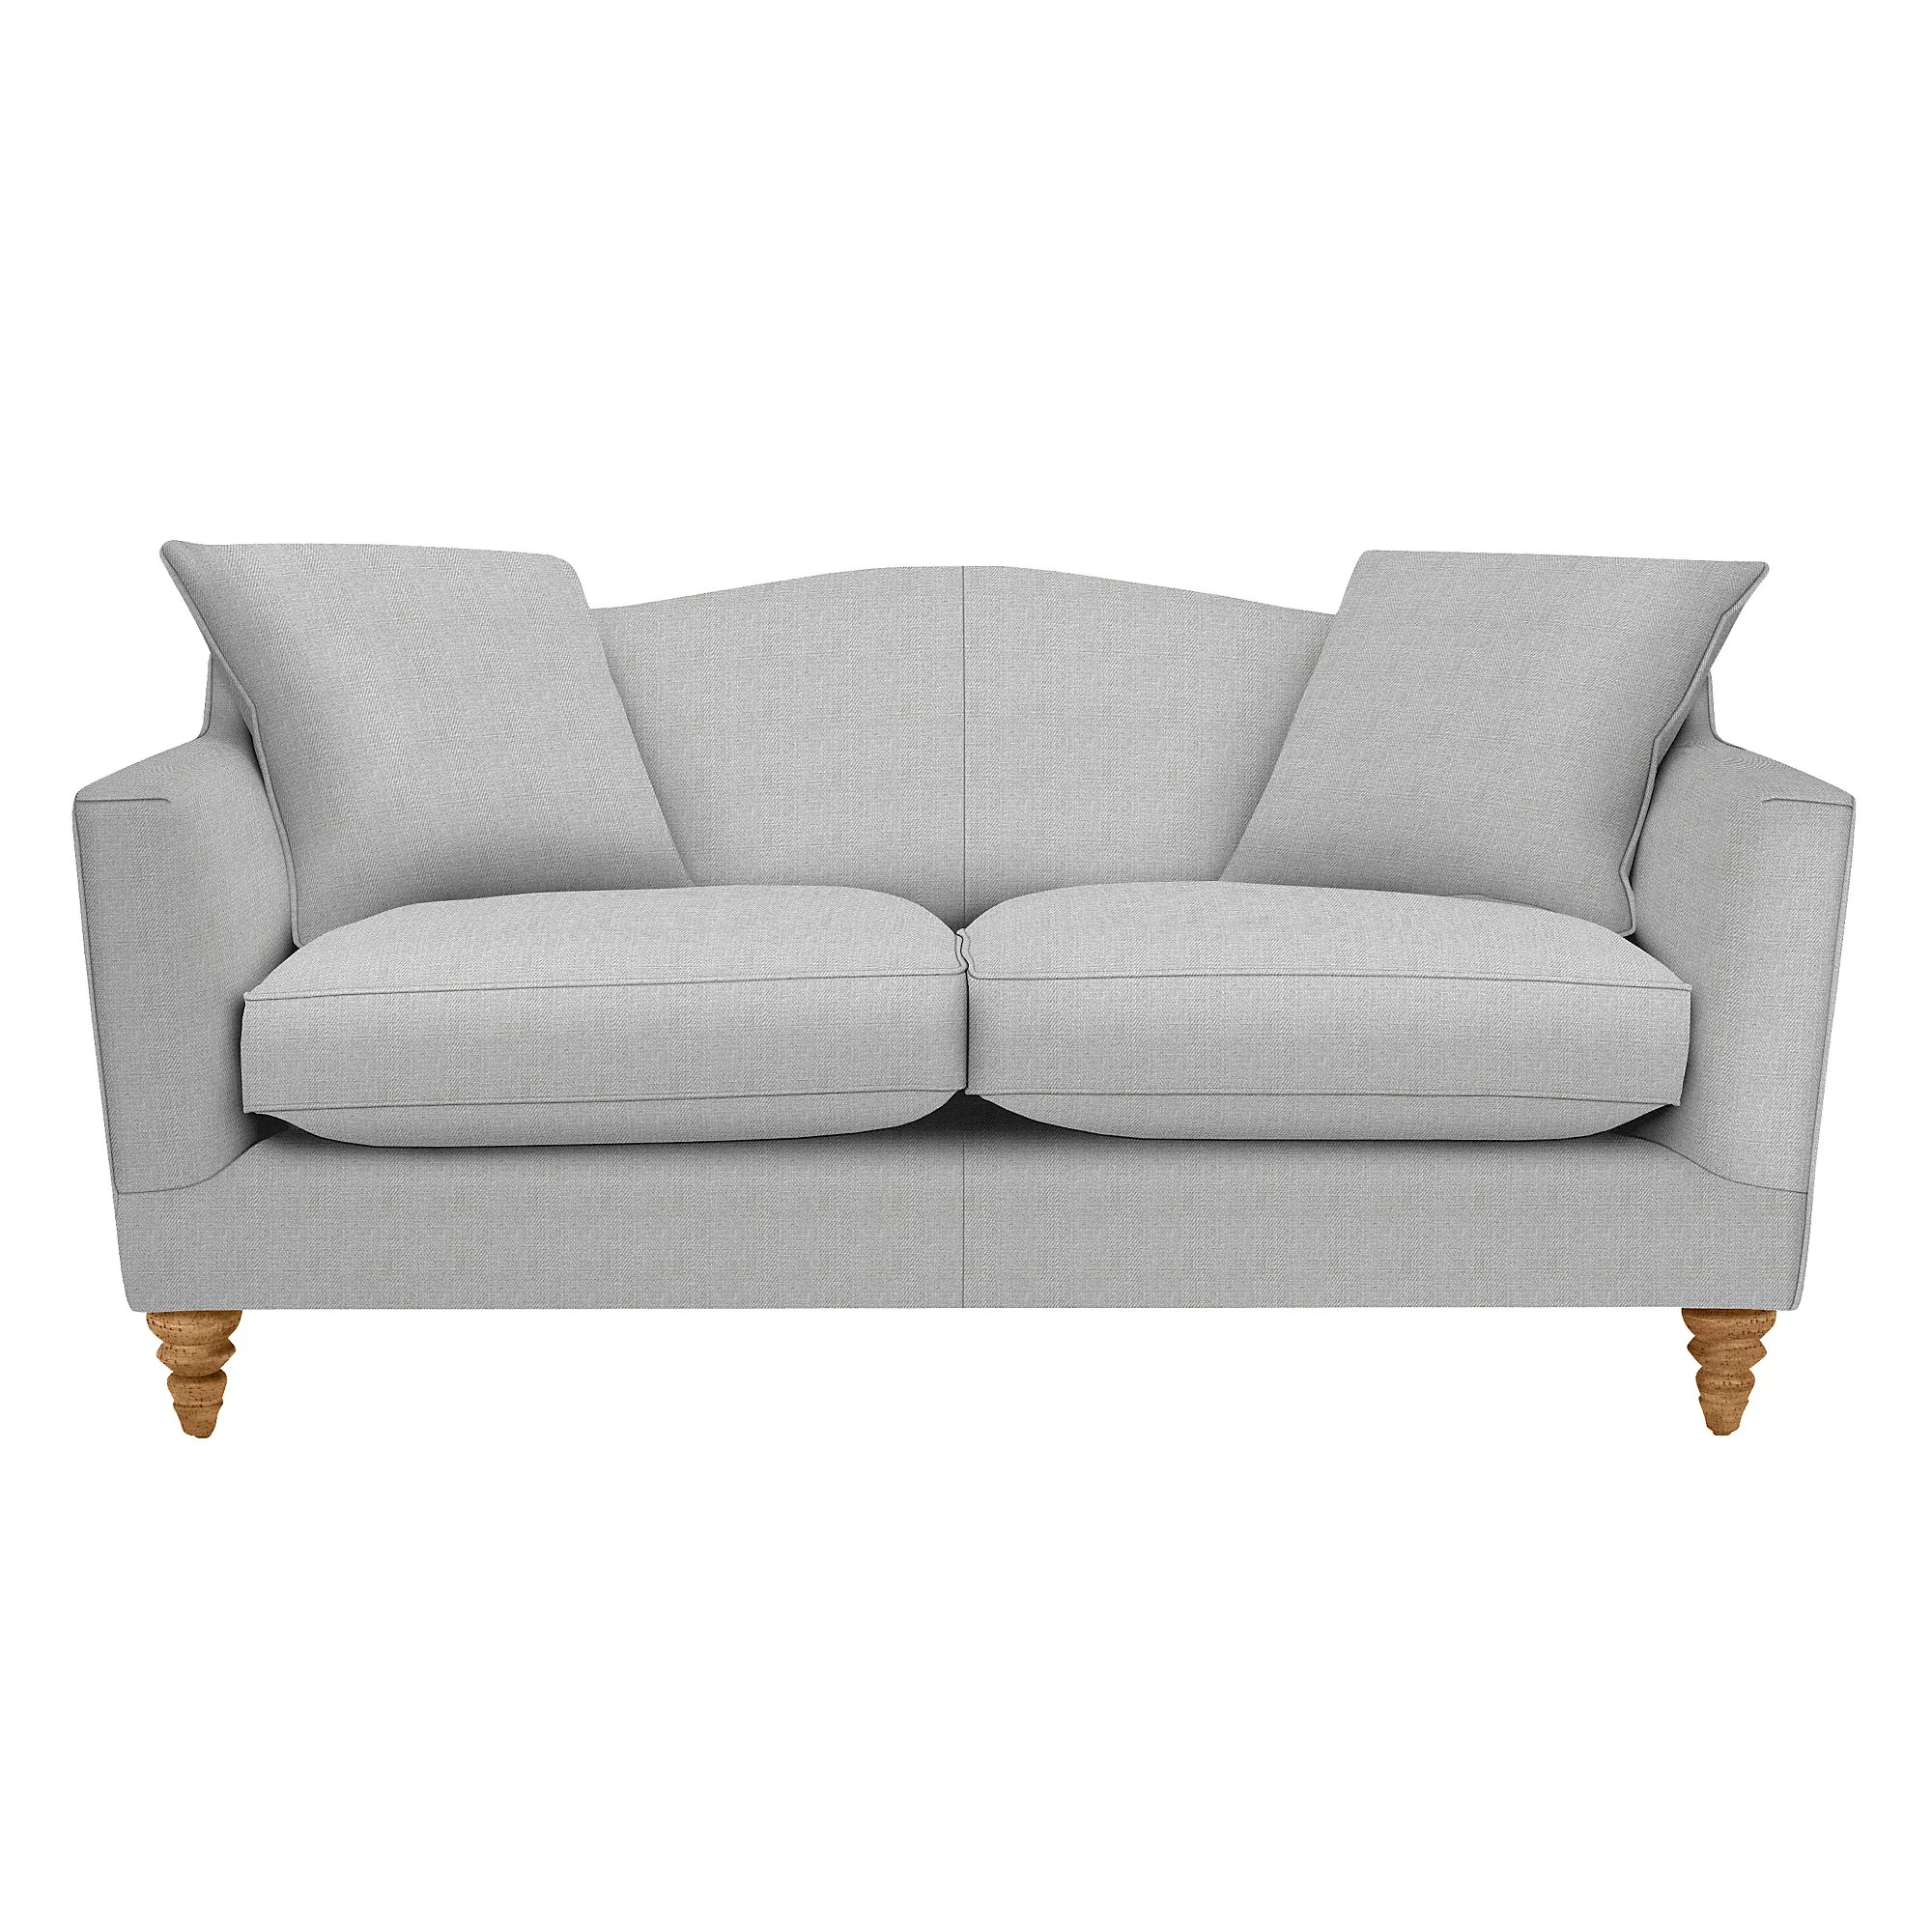 John Lewis Melrose Sofa John Lewis Croft Collection Melrose Medium 2 Seater Sofa Darwen